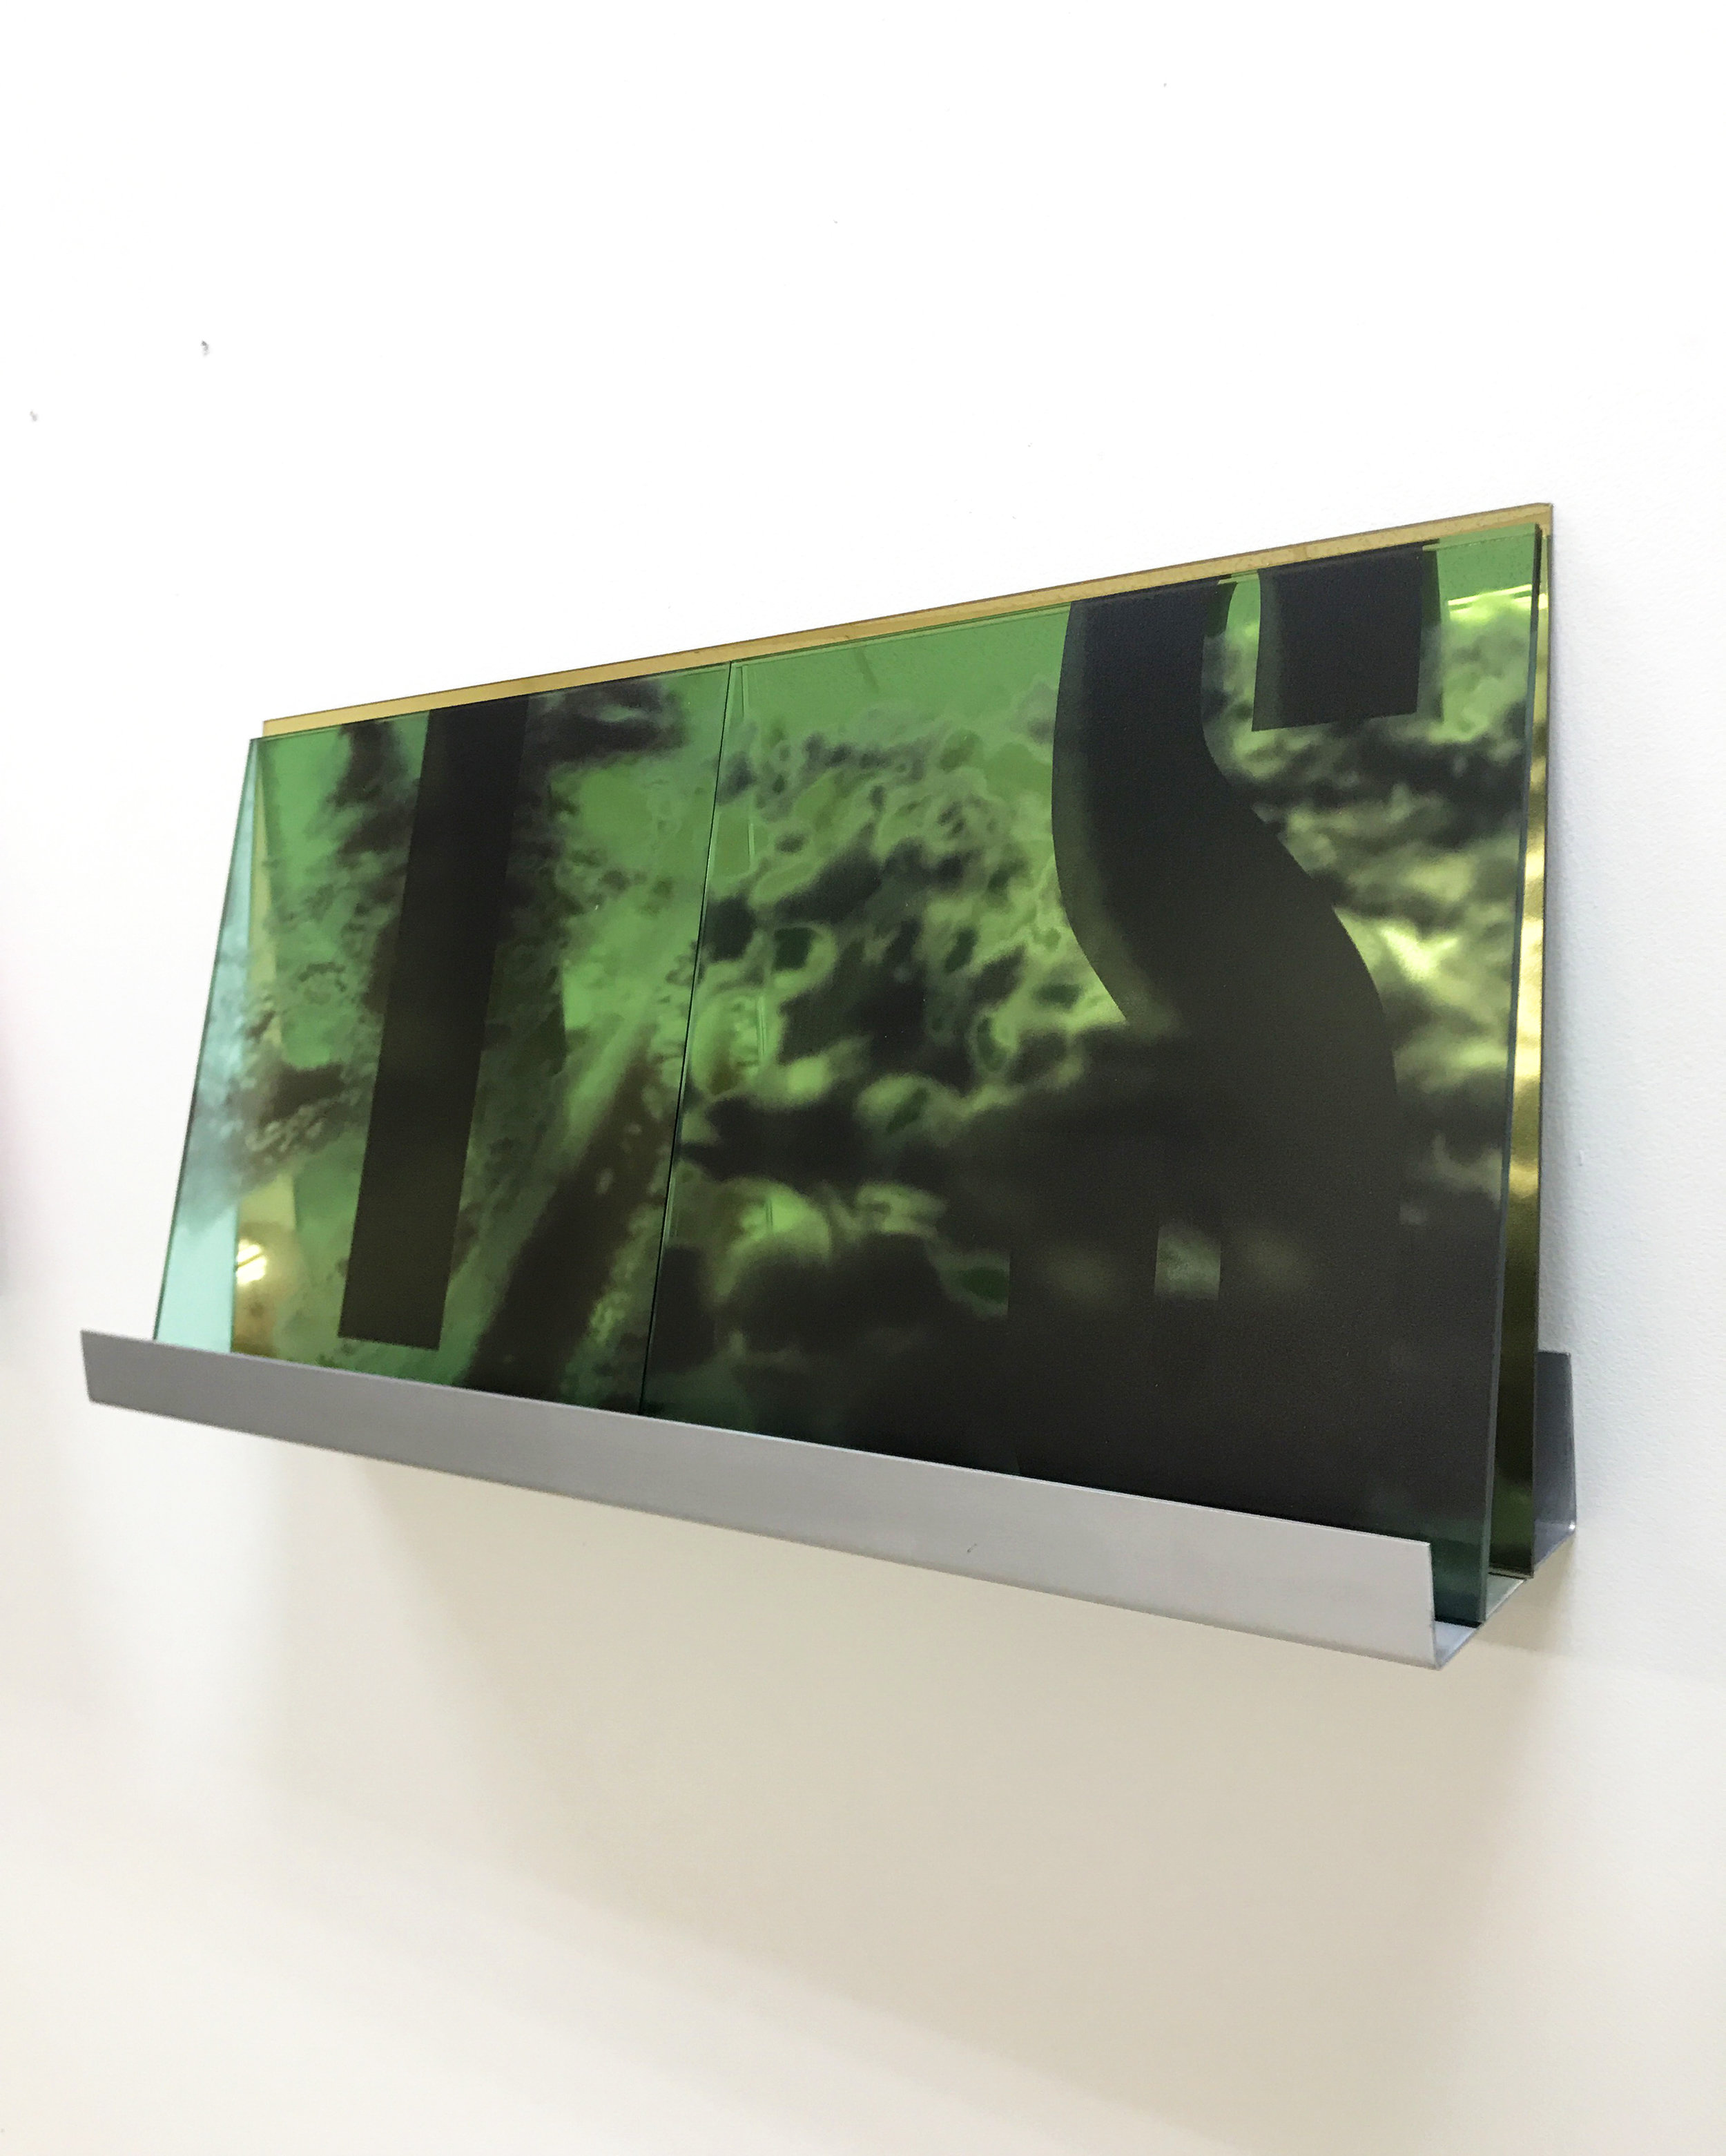 Clear and Present installation - plastic sculpture & plexiglas mirror